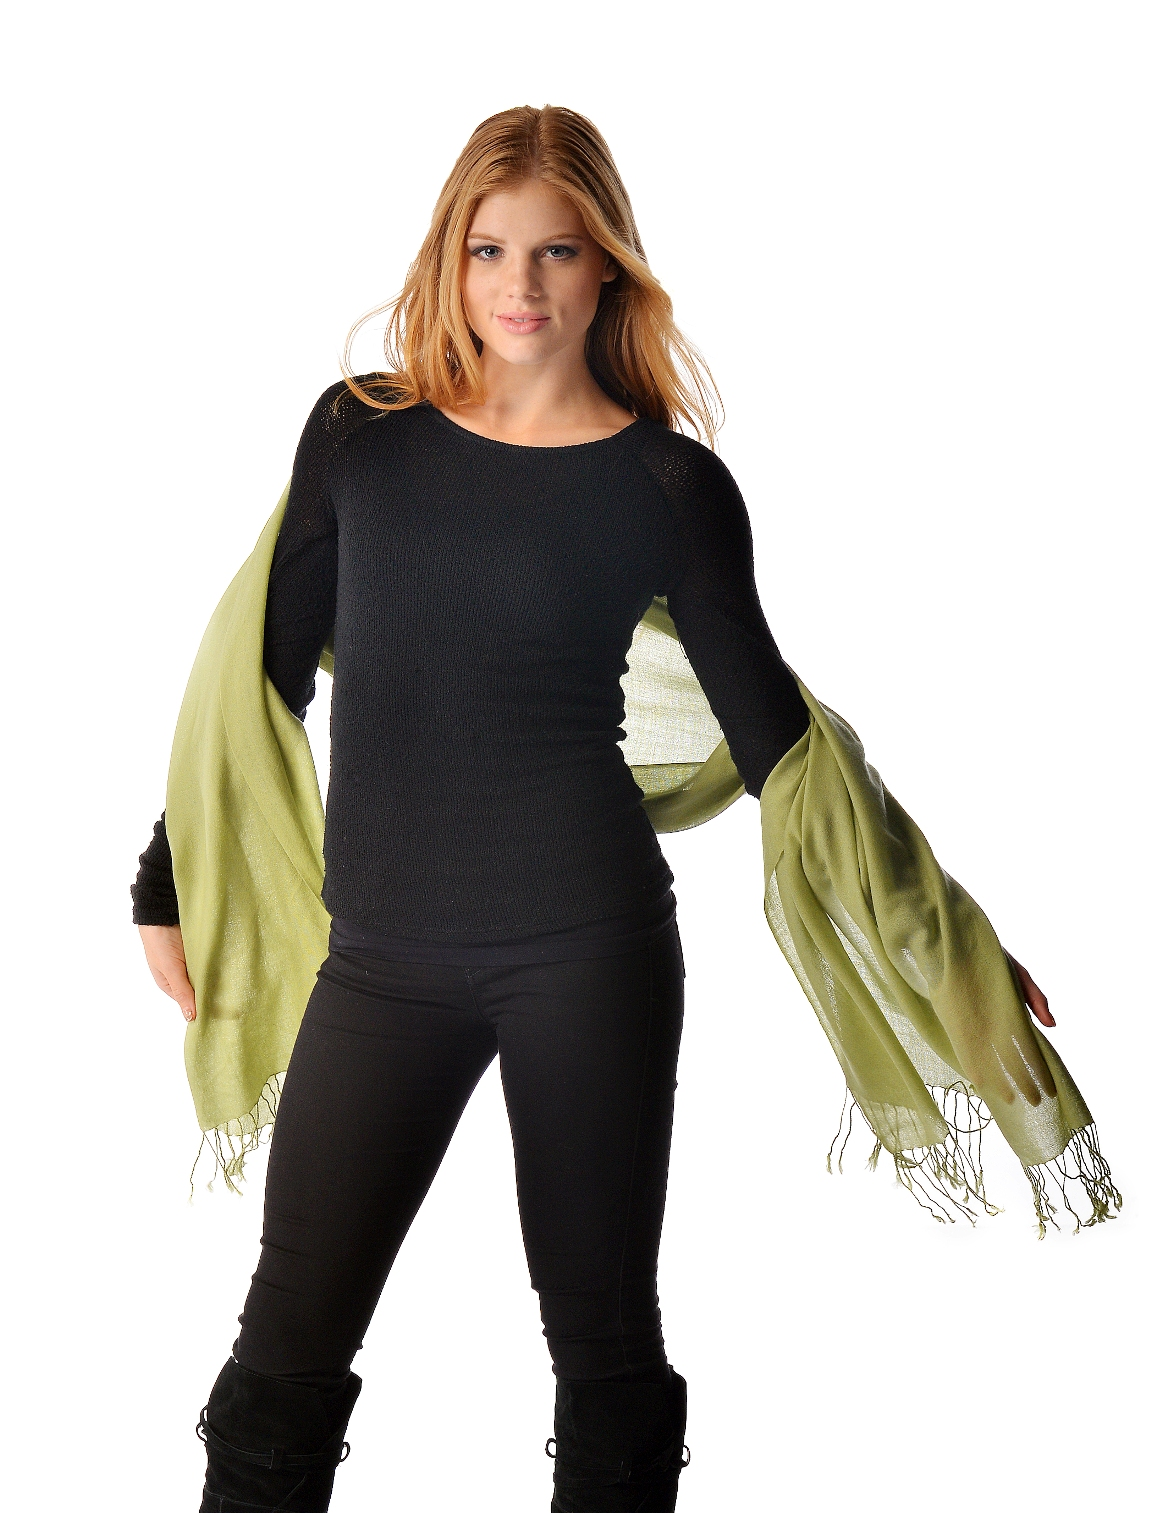 These wraps are made of pure mercerized merino wool and measure 28 x 72. Great for casual wear. They look and feel very similar to the real pashmina but may not provide as much warmth. Nice to have as a wrap for cool summer and fall evenings.